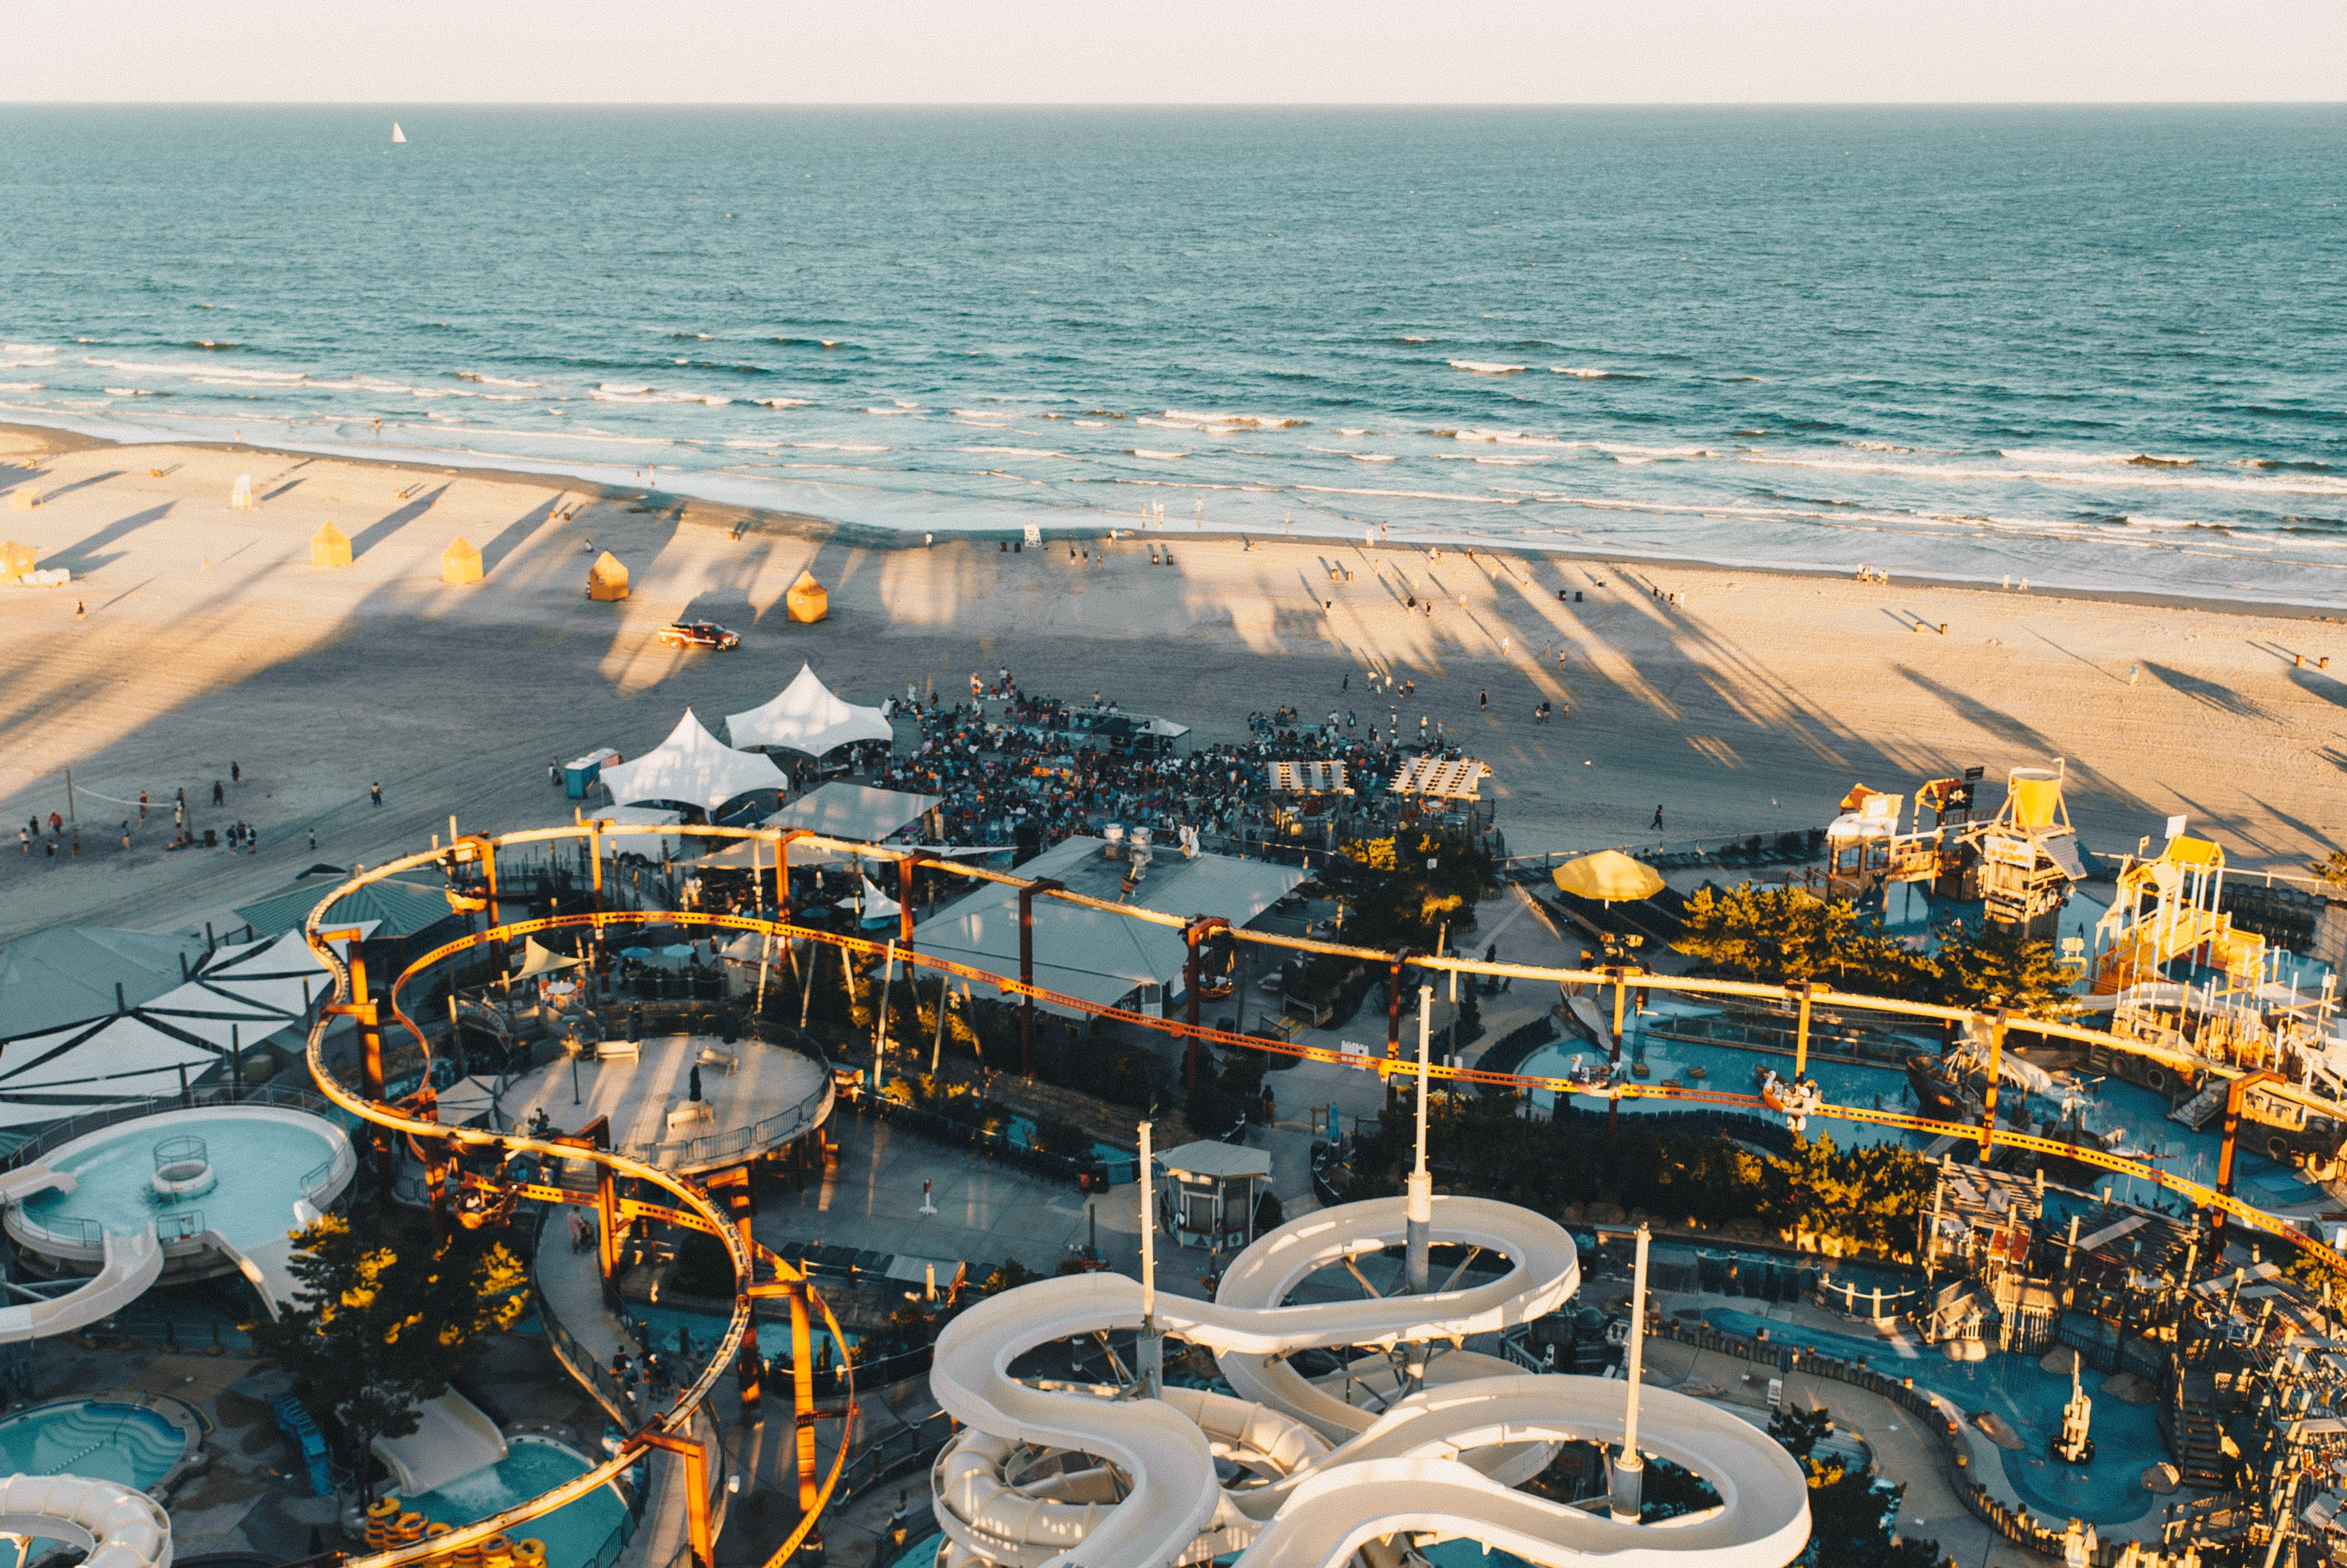 Drone view of a water park on a sandy beach at Morey's Piers & Beachfront Water Parks